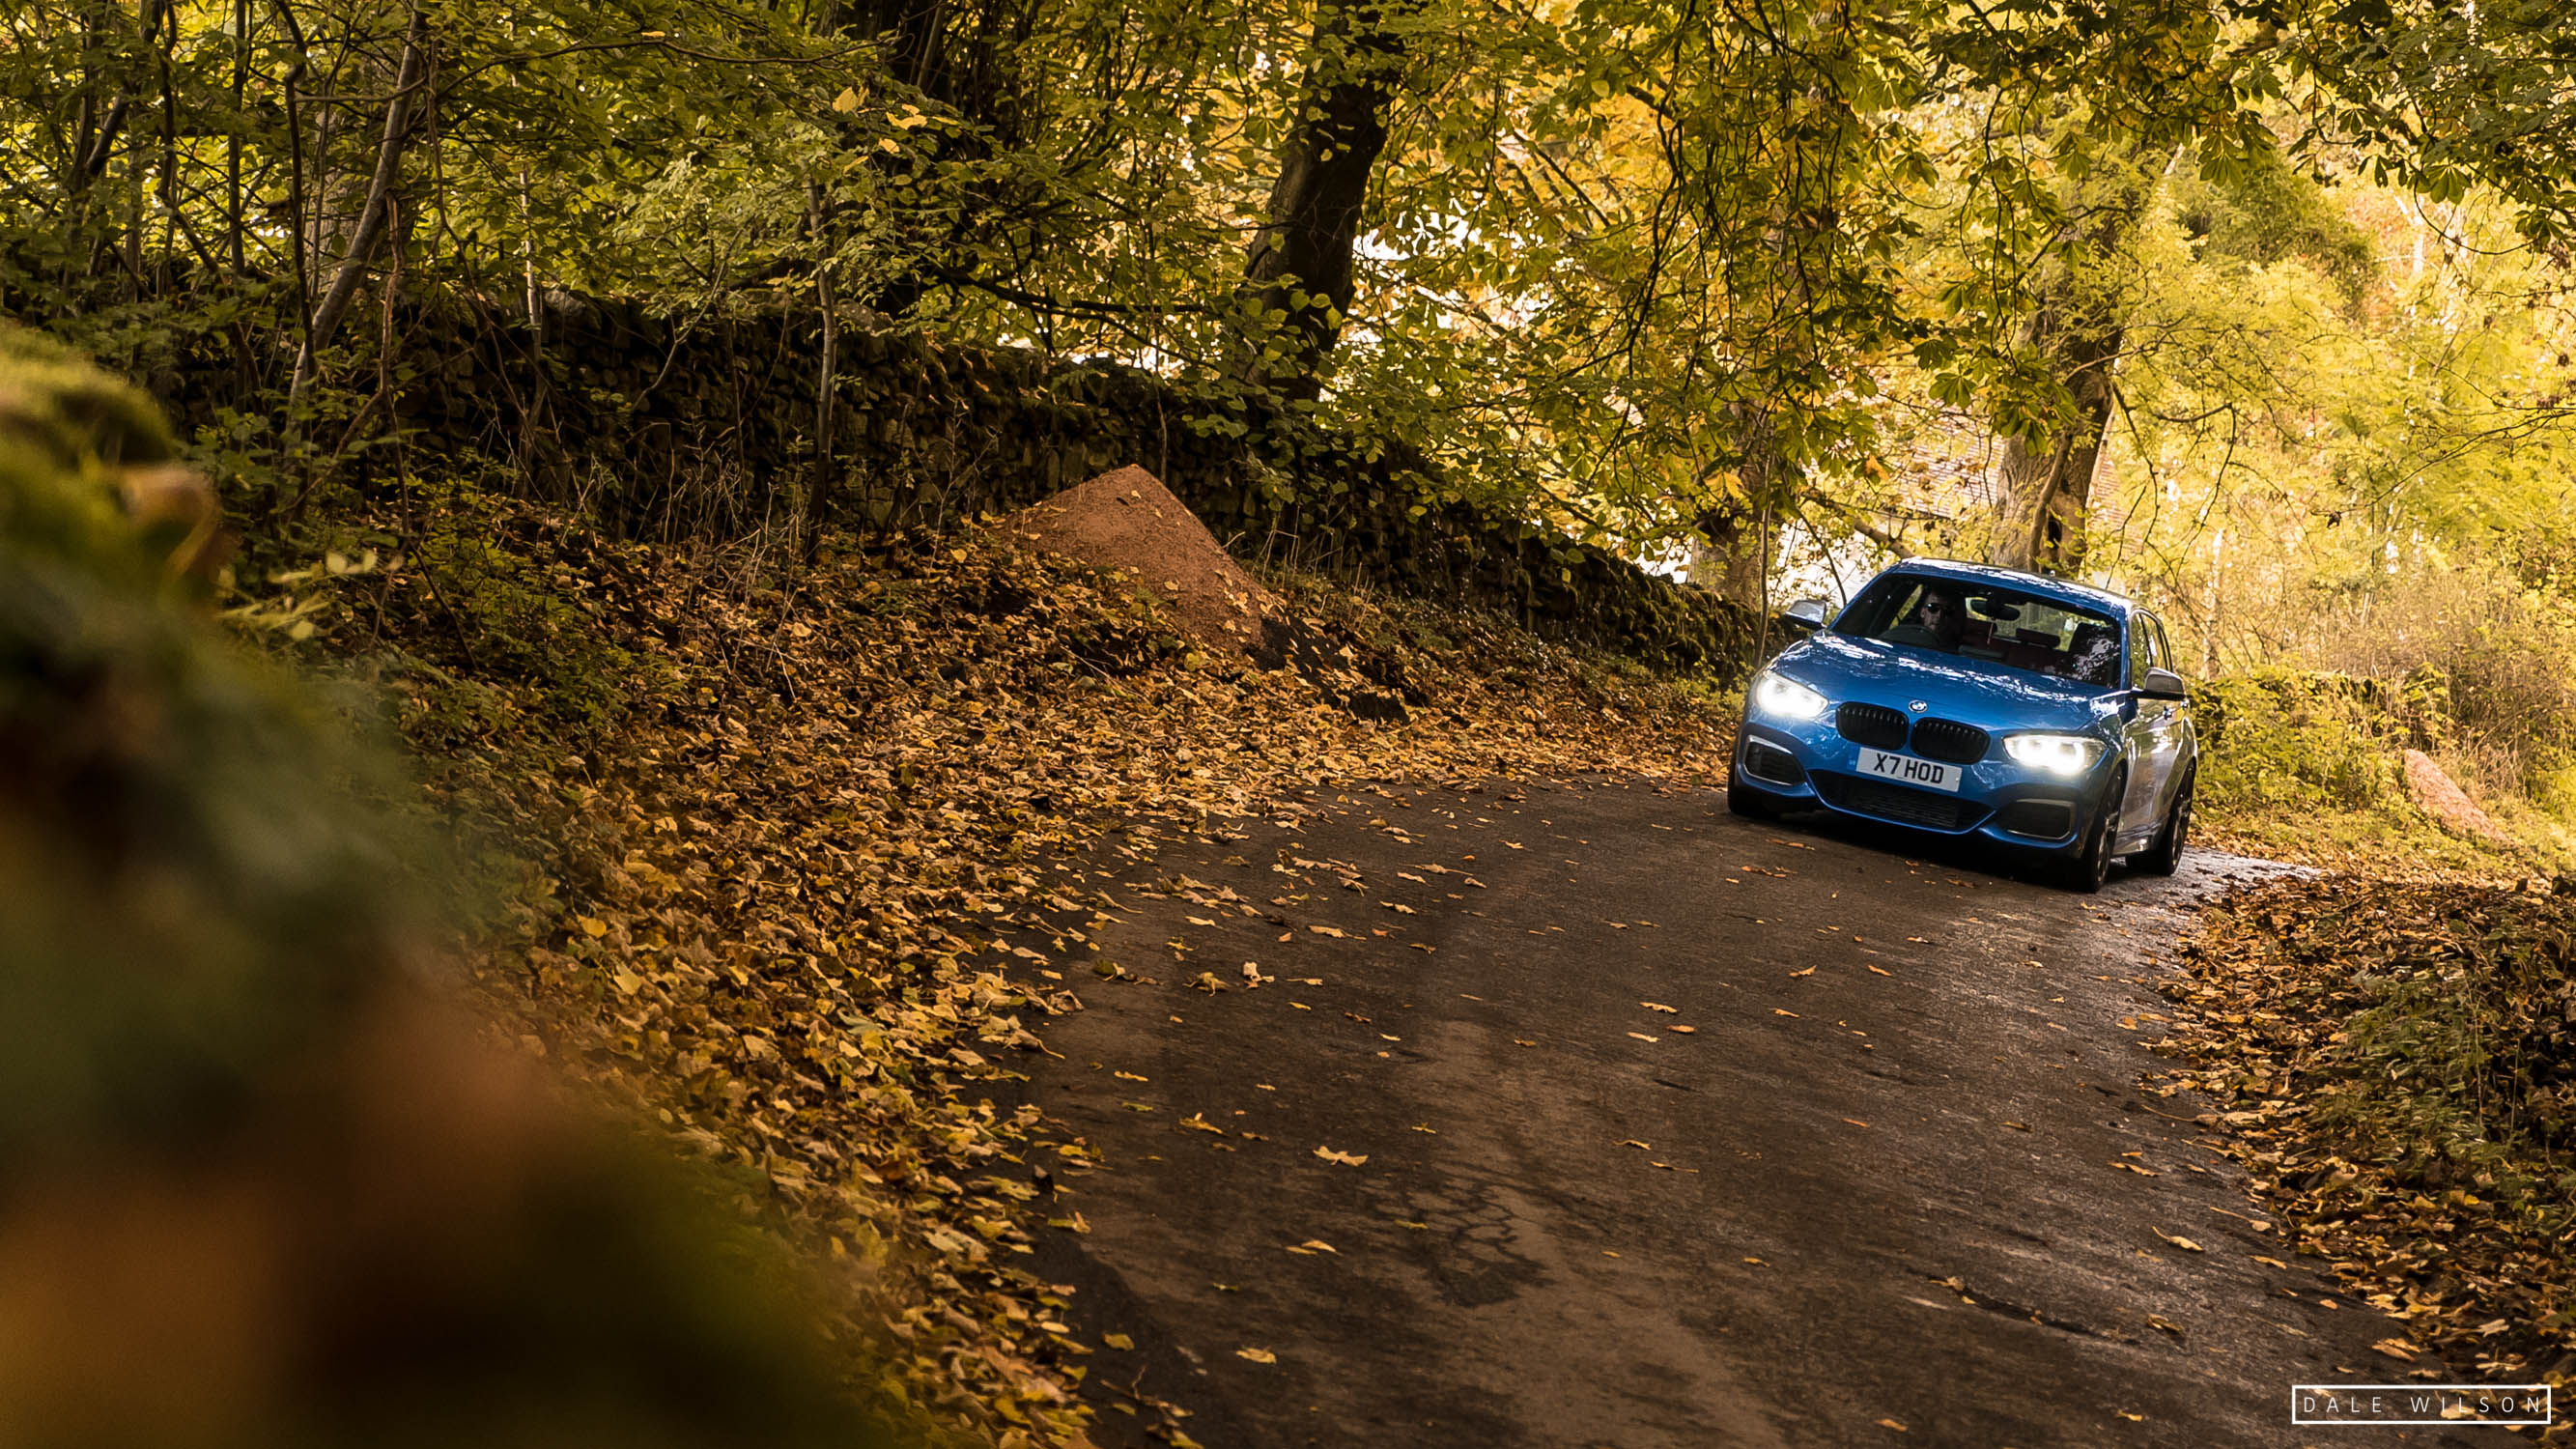 An Estoril blue BMW 135i xenon headlights in autumn leaves cumbria